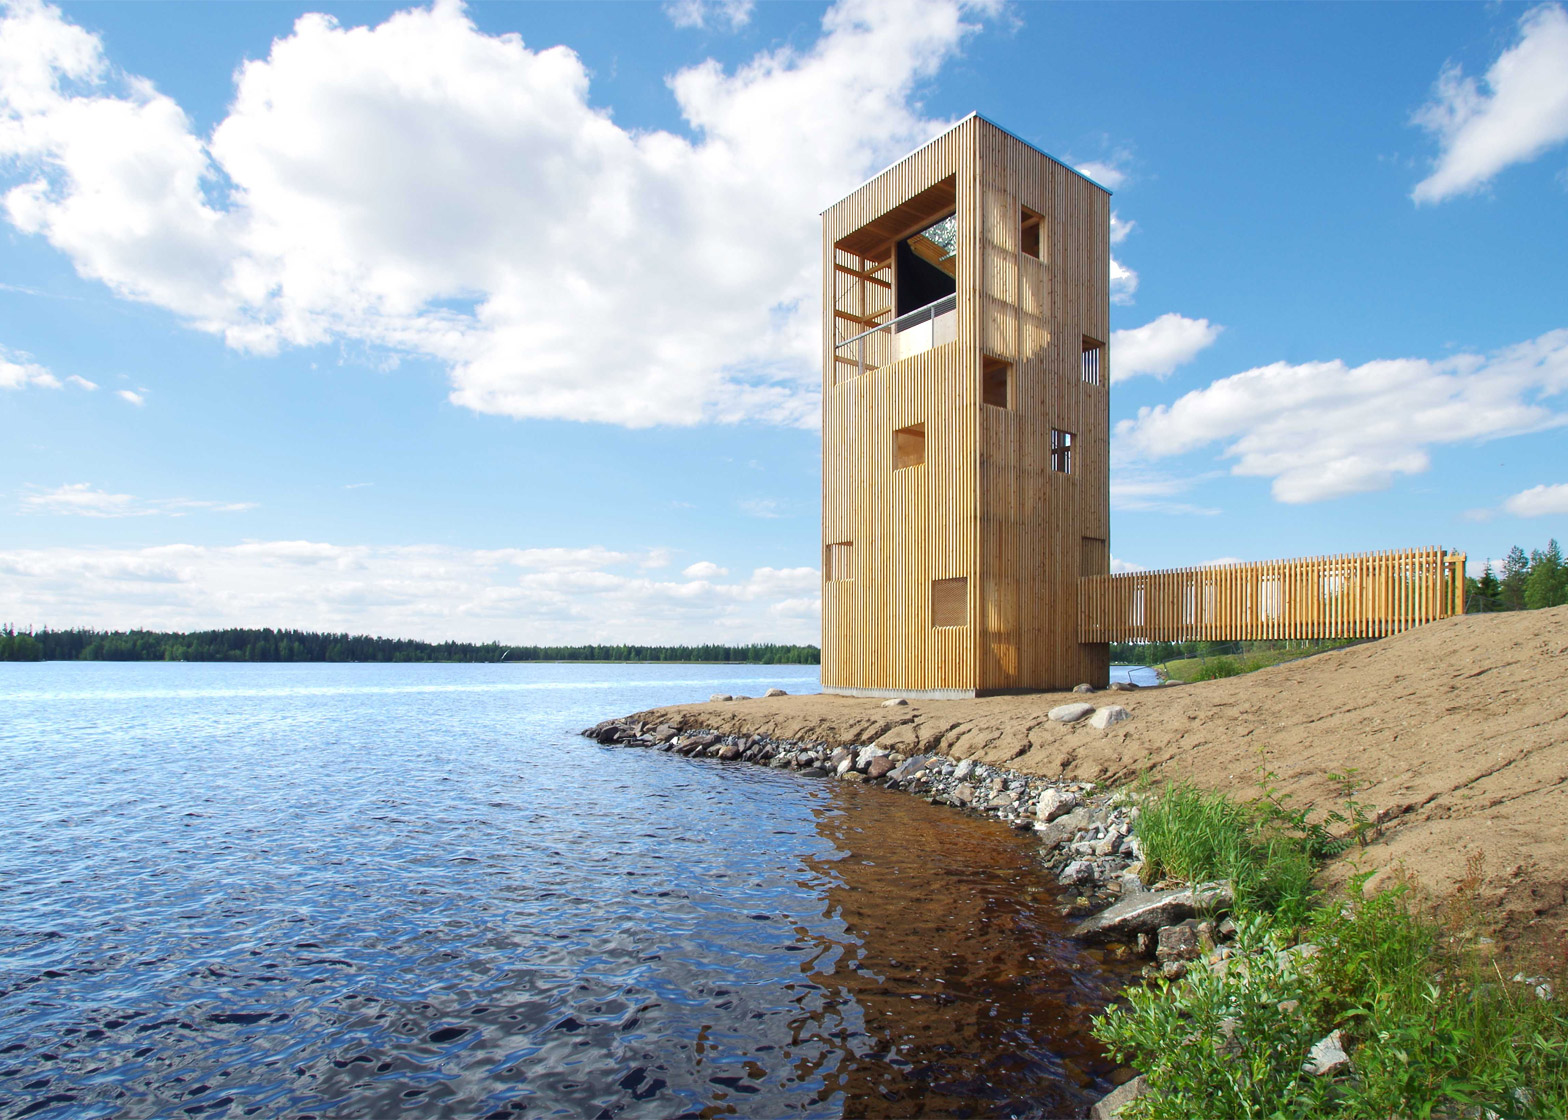 Periscope tower by Ooppea in Finland